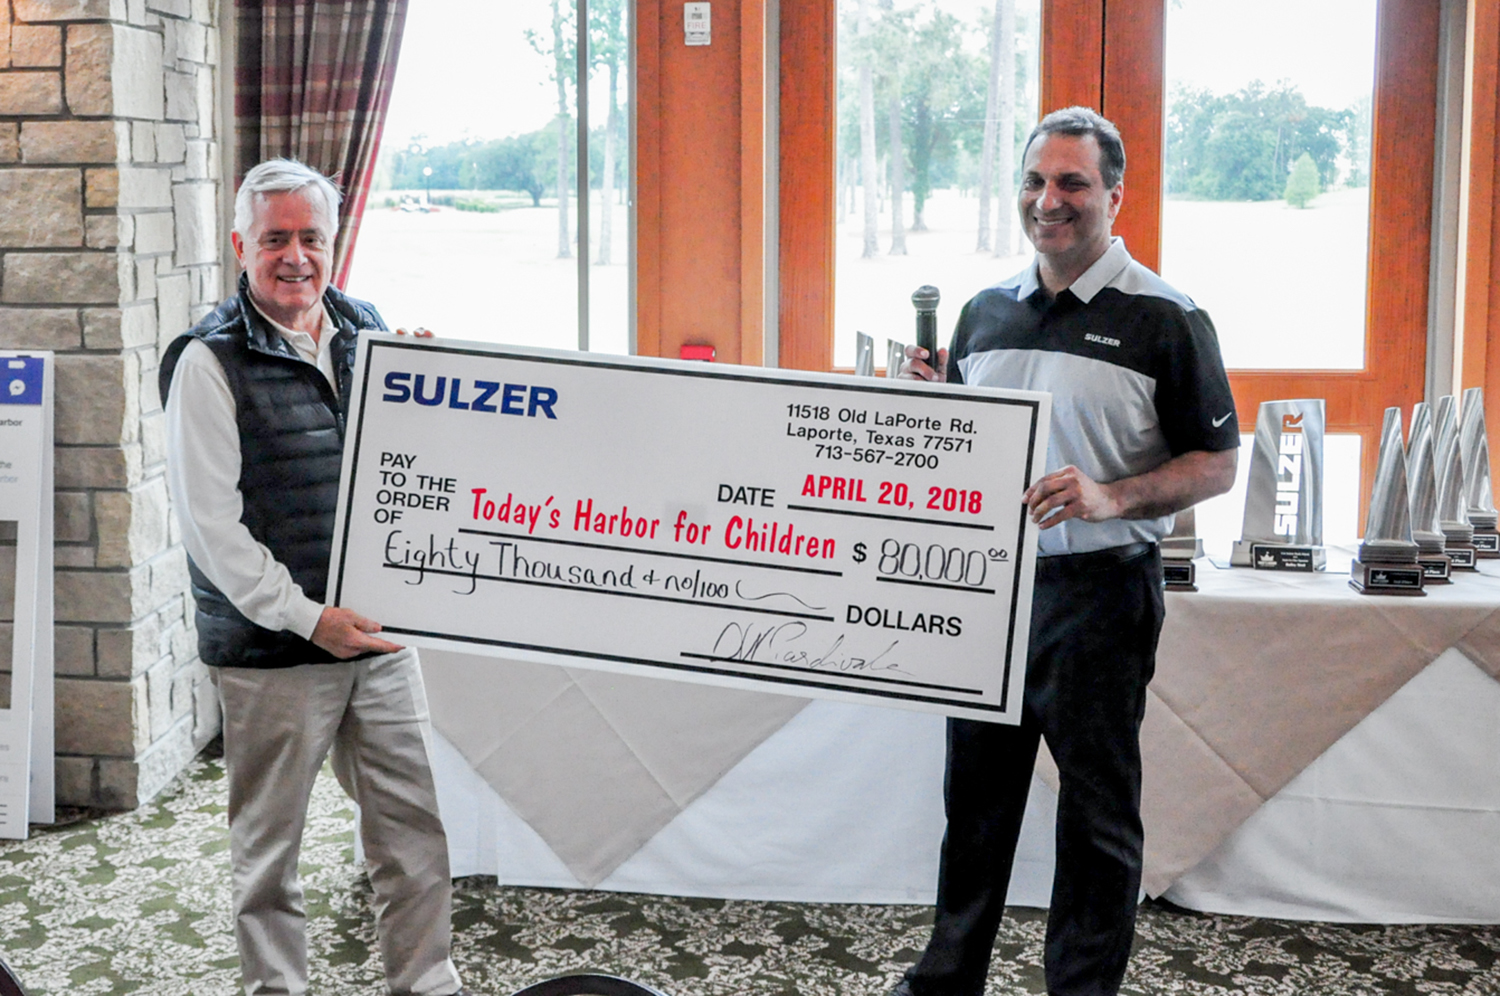 31st annual golf tournament raises USD 80'000 for children's charity